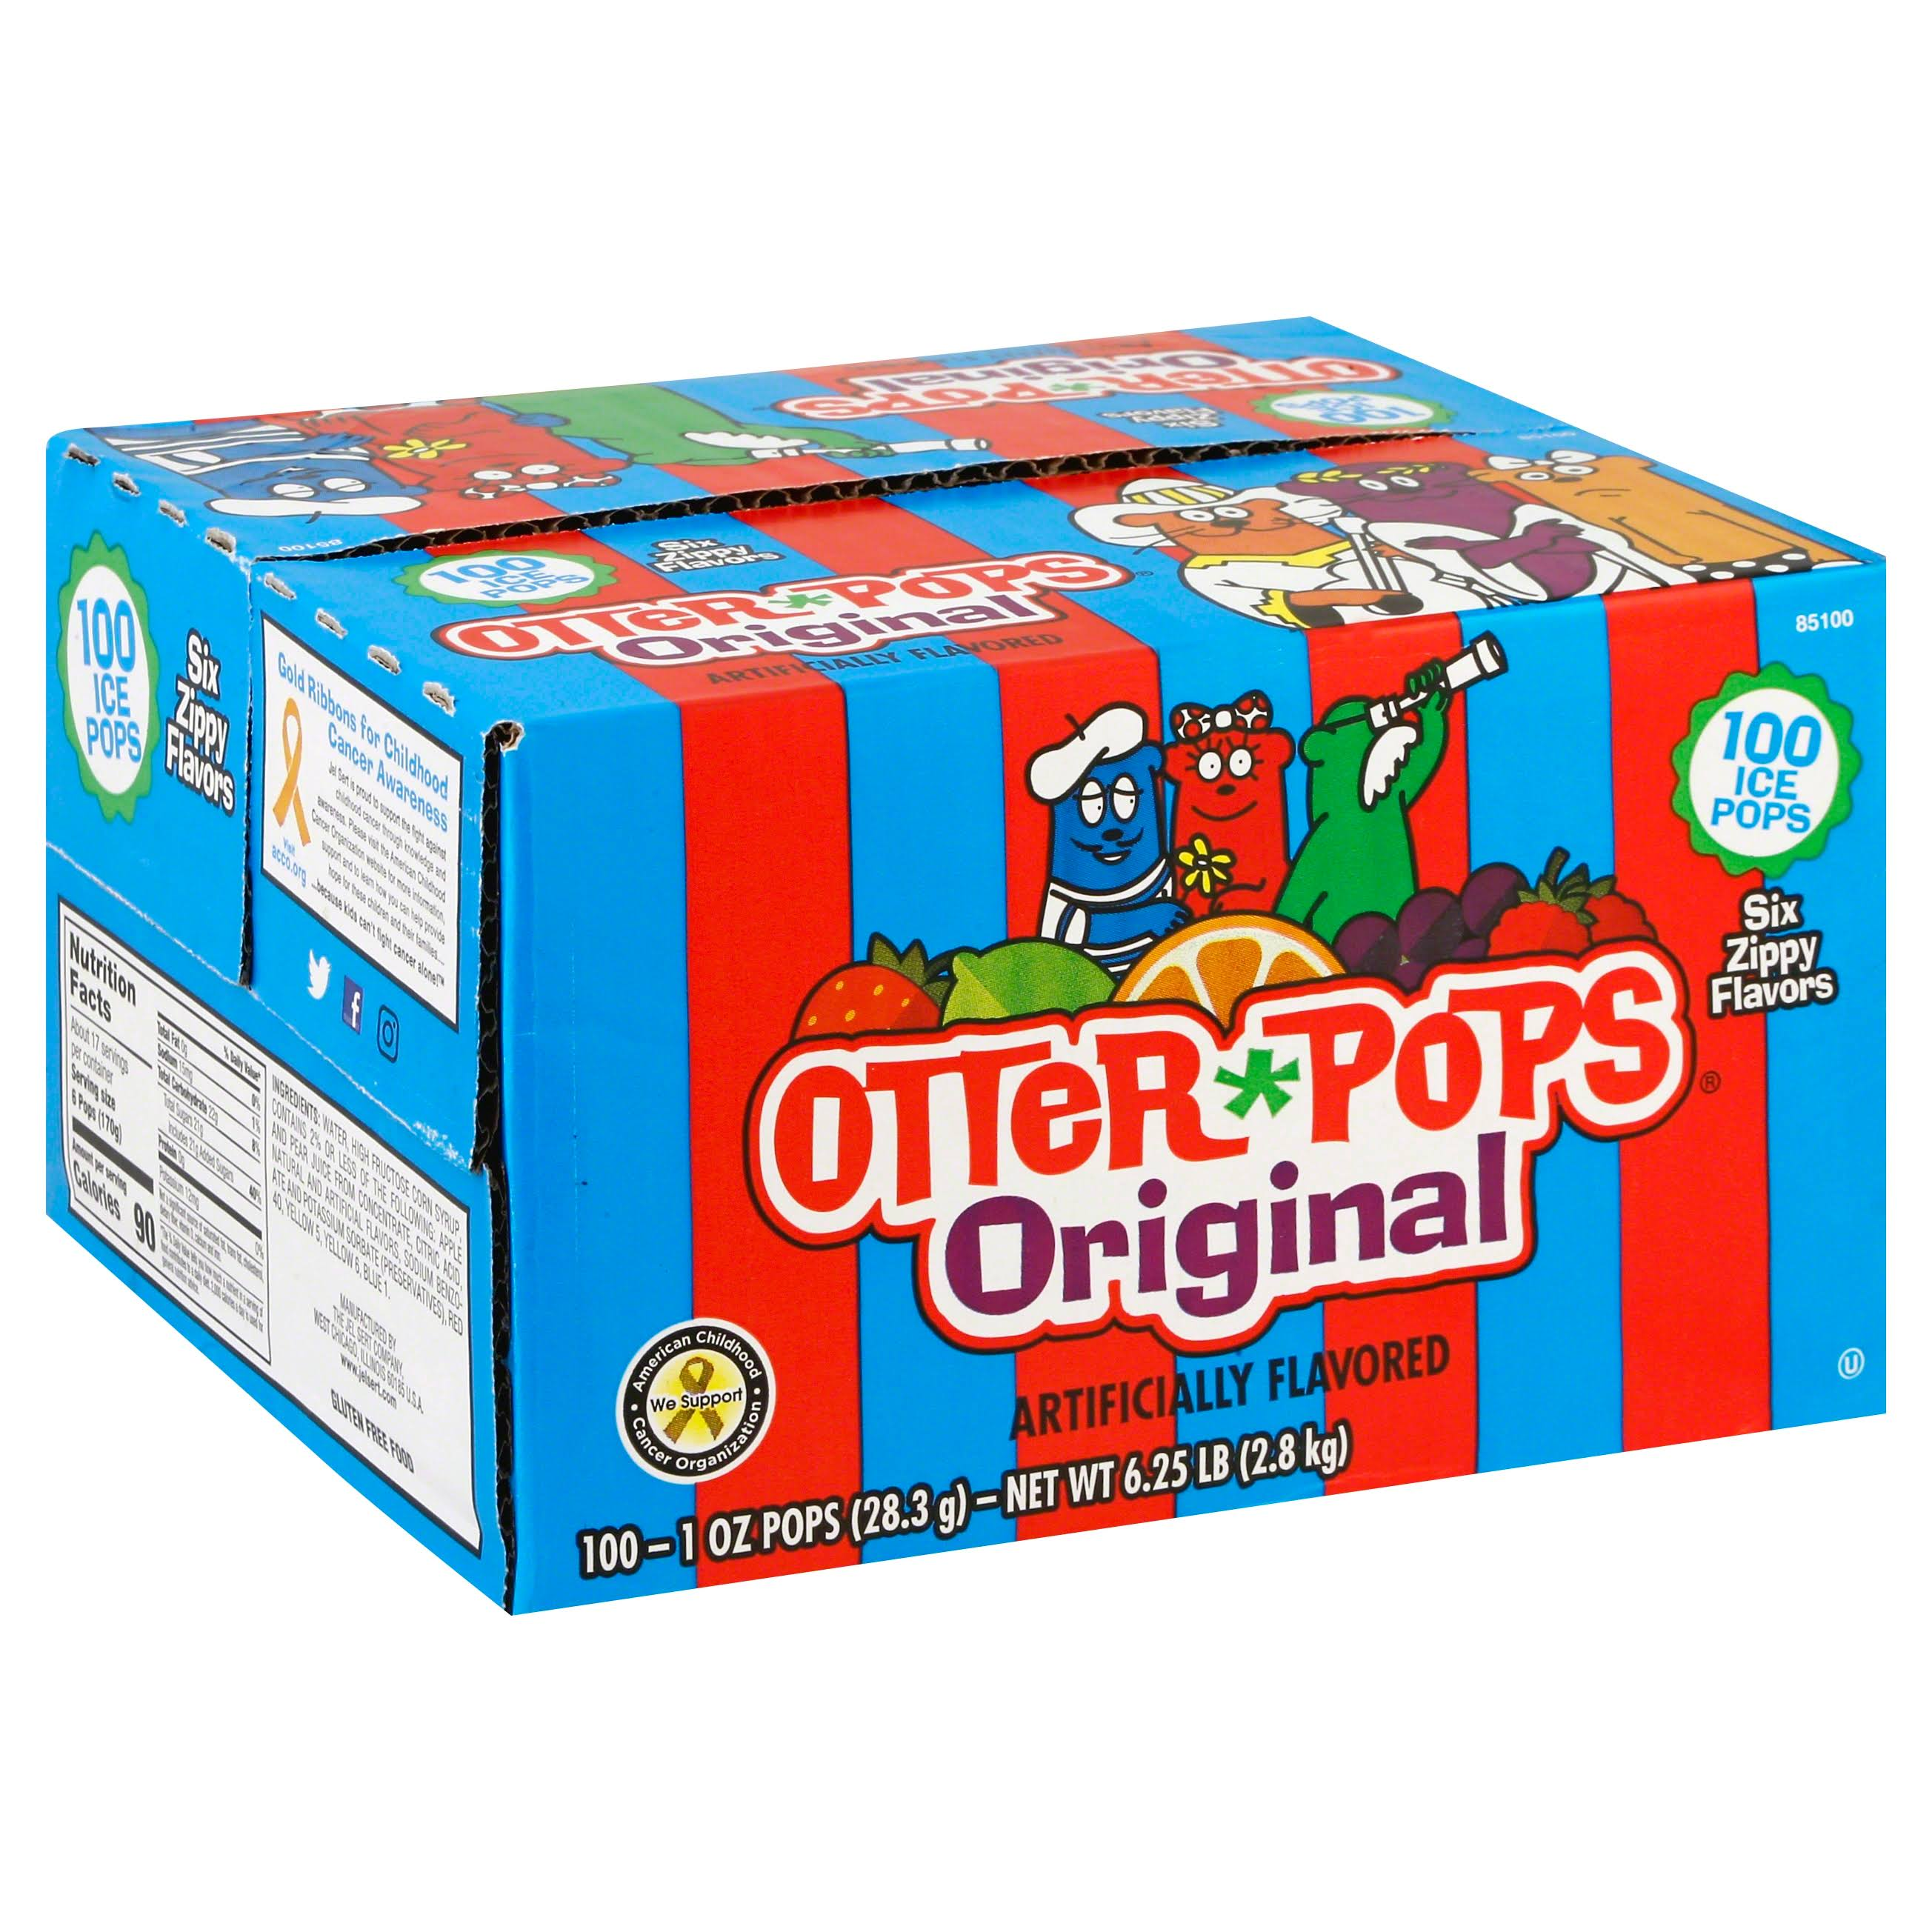 Otter Pops Ice Pops, Original - 100 pack, 1 oz pops